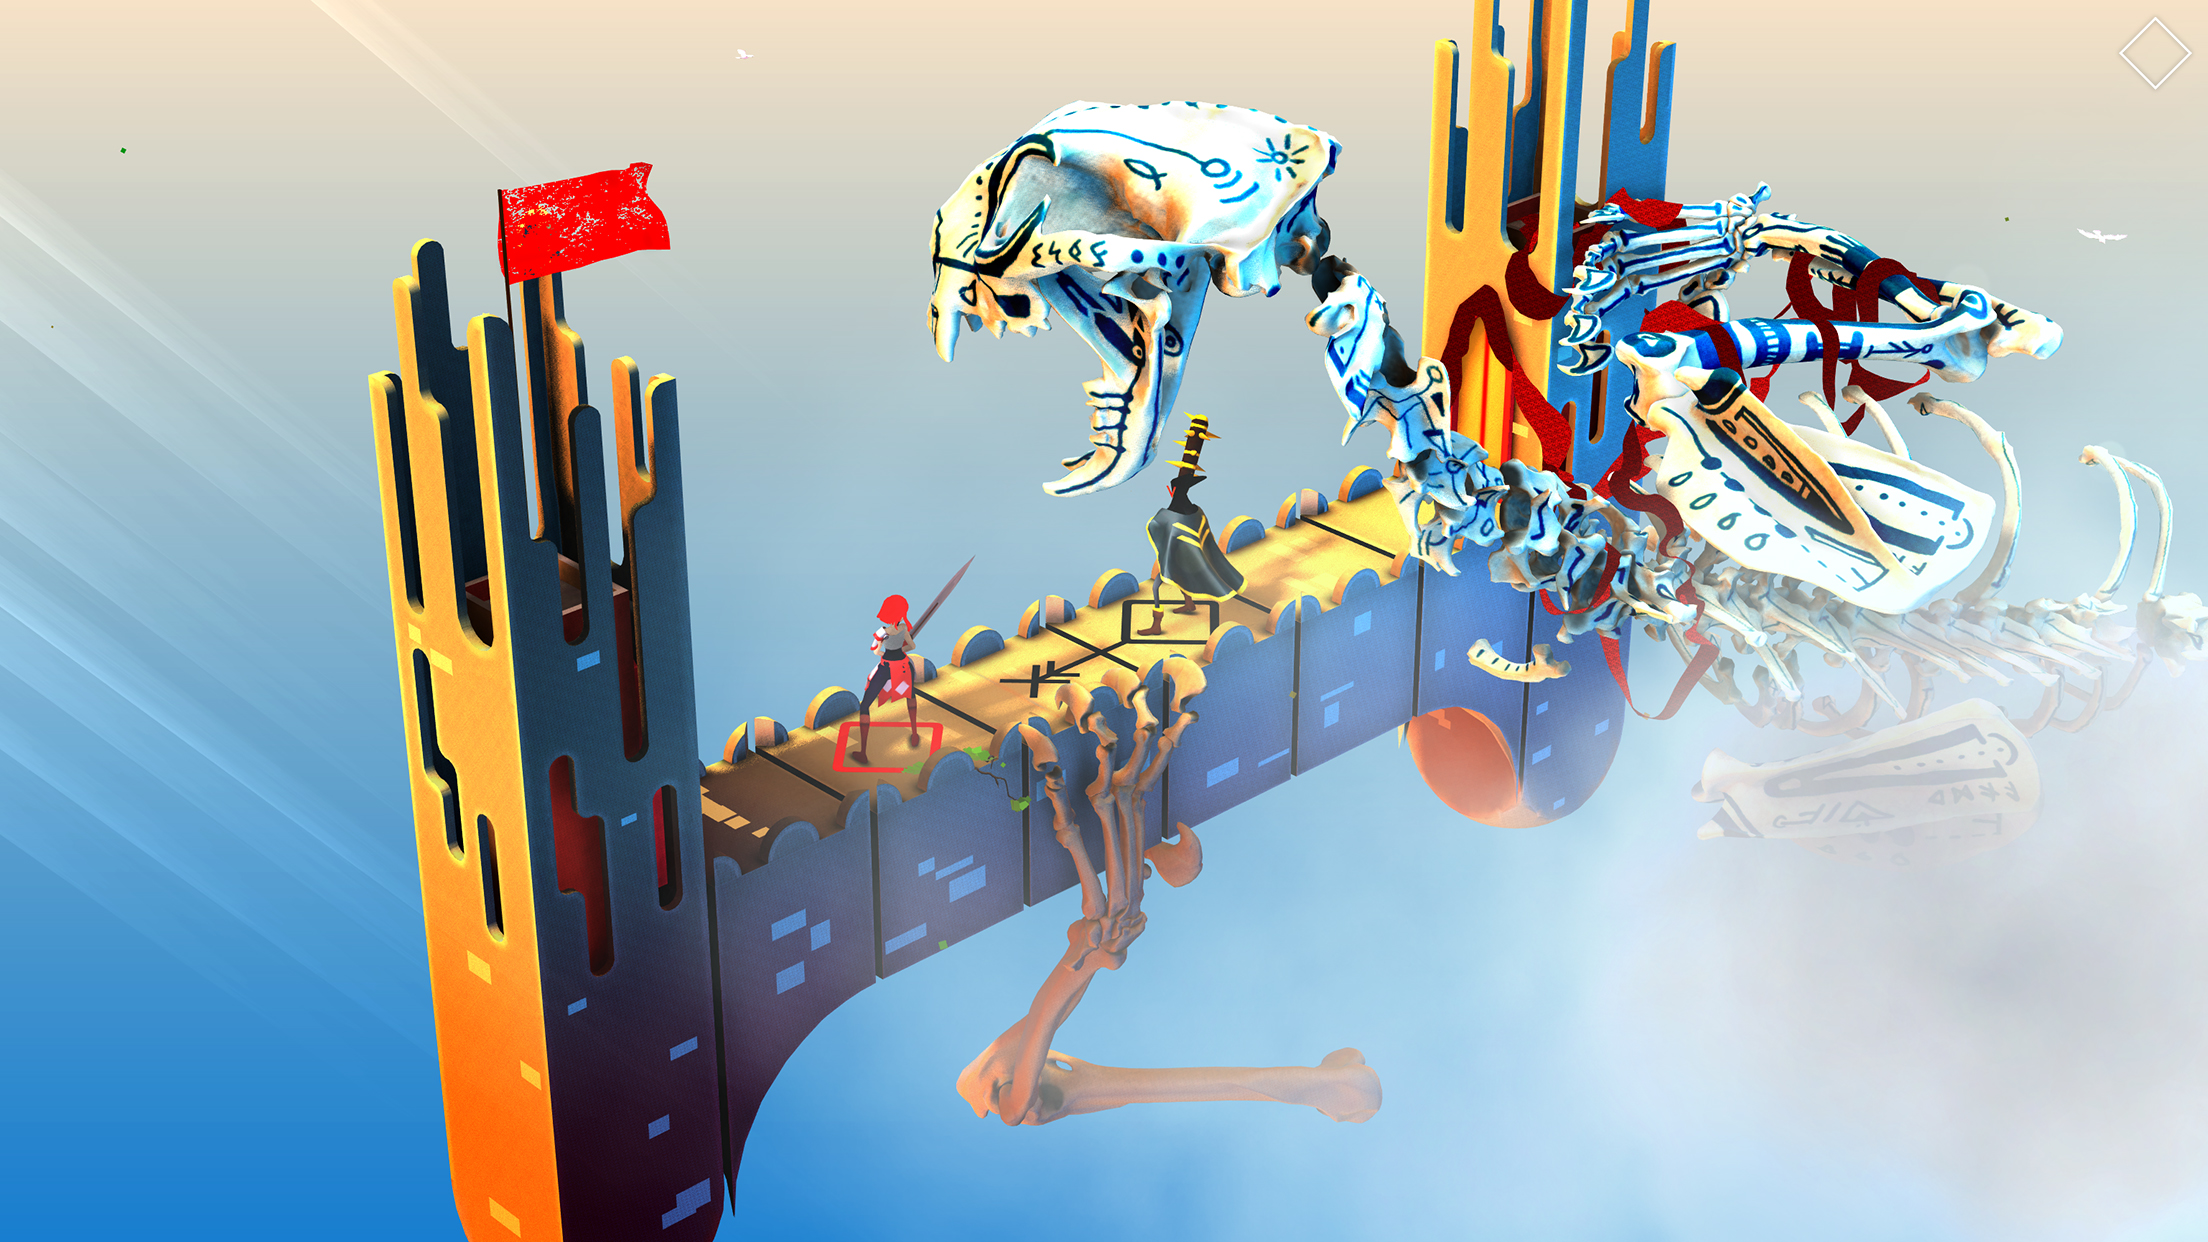 Weekly Trailer Round-Up: Euclidean Skies, Call of Cthulhu & More